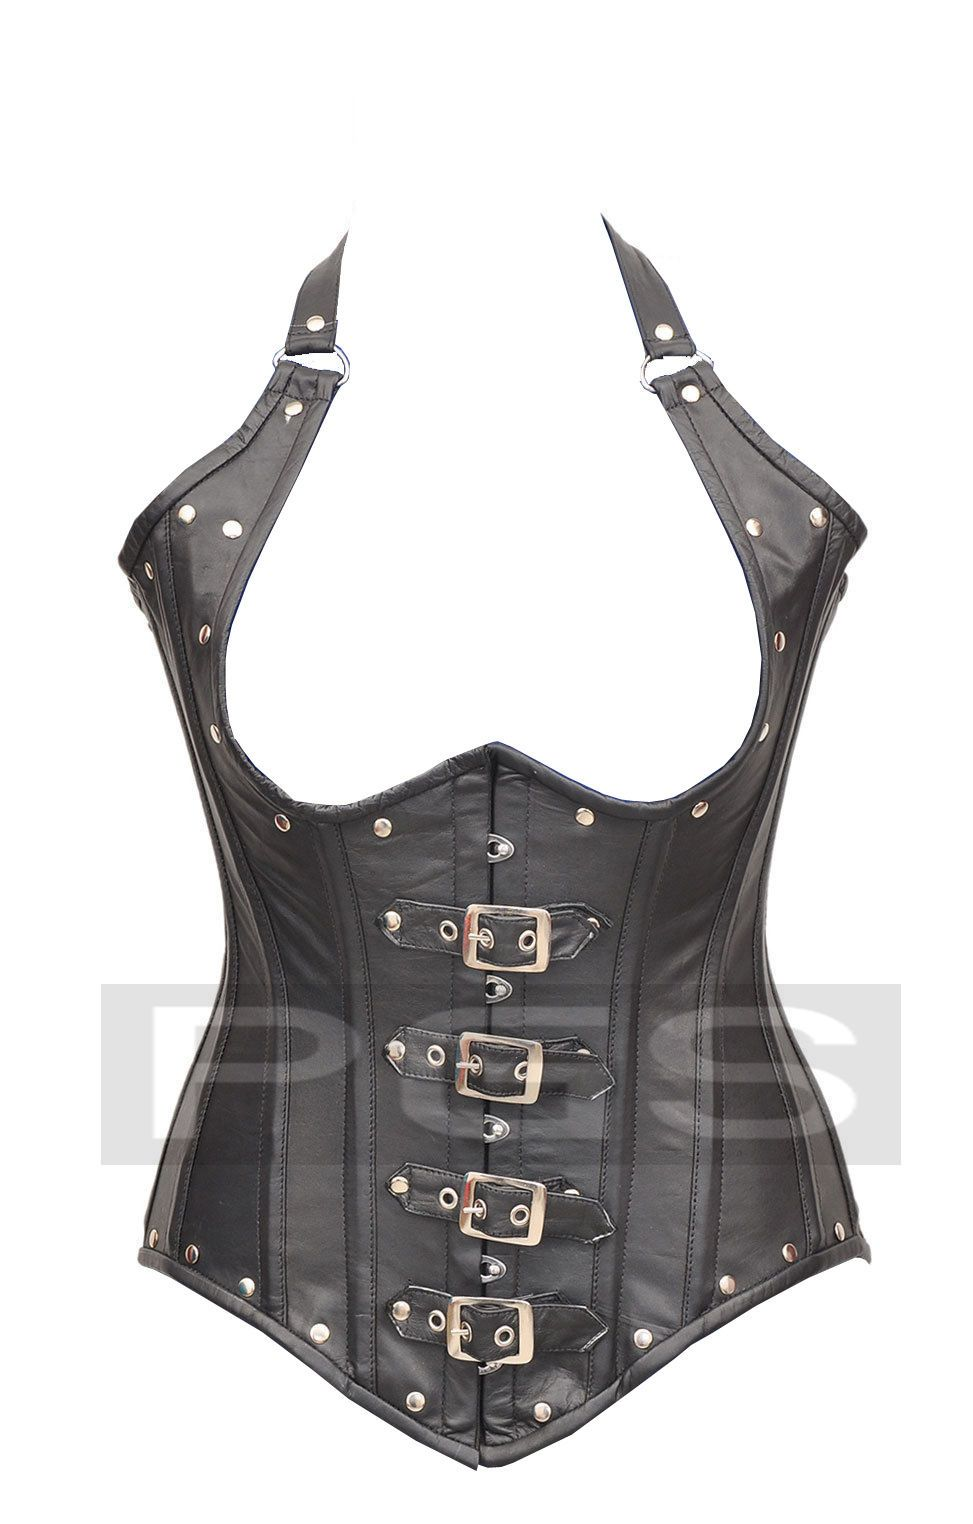 0b6c90b50df Genuine Leather Steel Bone Under Bust Corset Bustier 9015 Inner Shell   Strong 100% Cotton Jean Use As A Lining In This Corset.